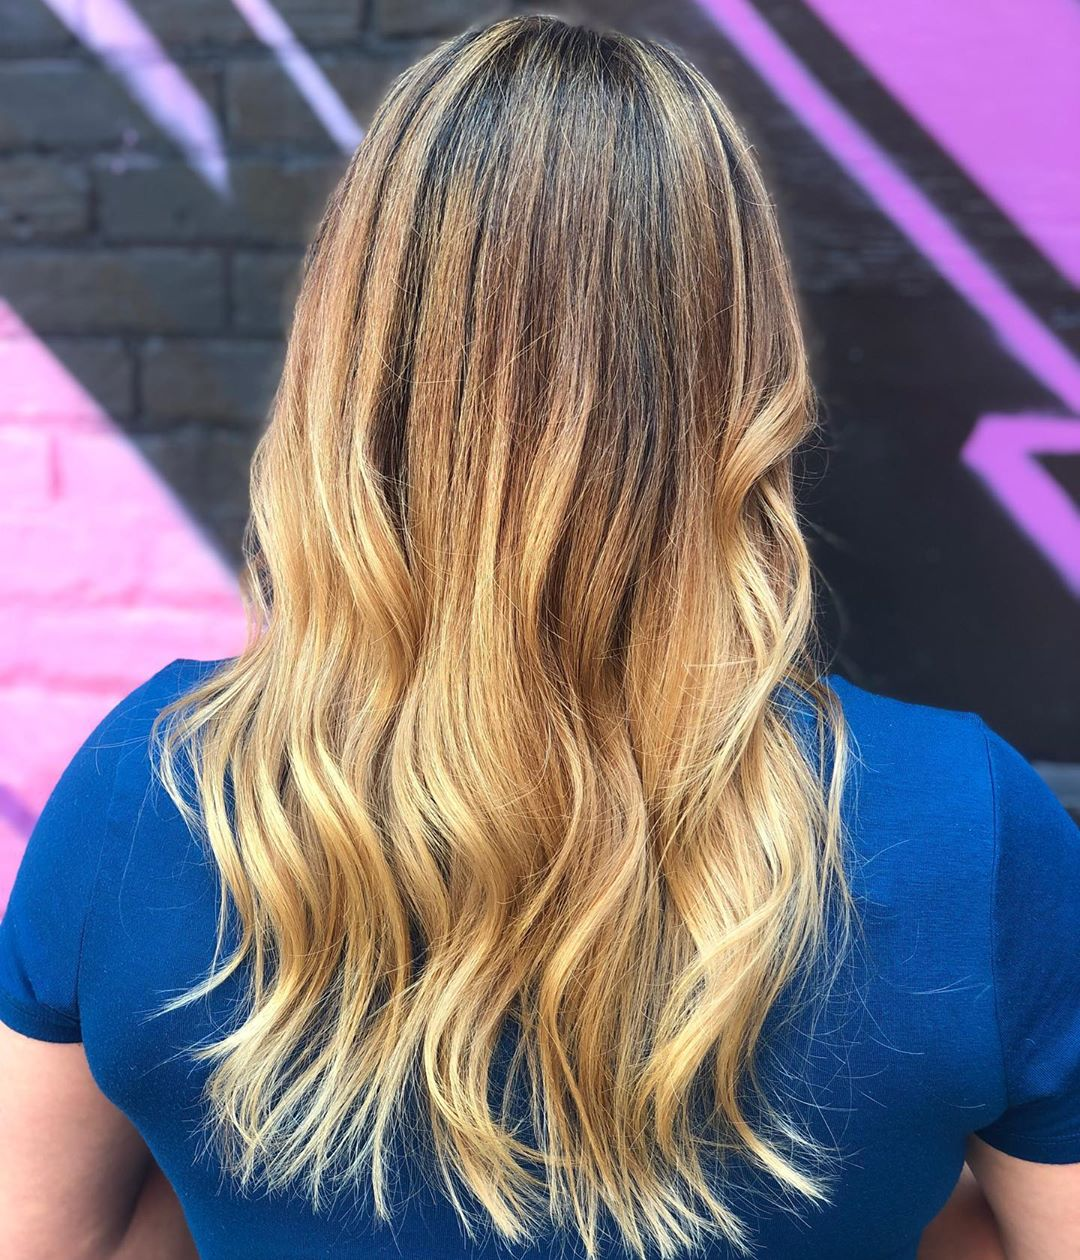 balayage ombre hairstyles 5 9 New Blonde Balayage Hairstyles You'll Love!